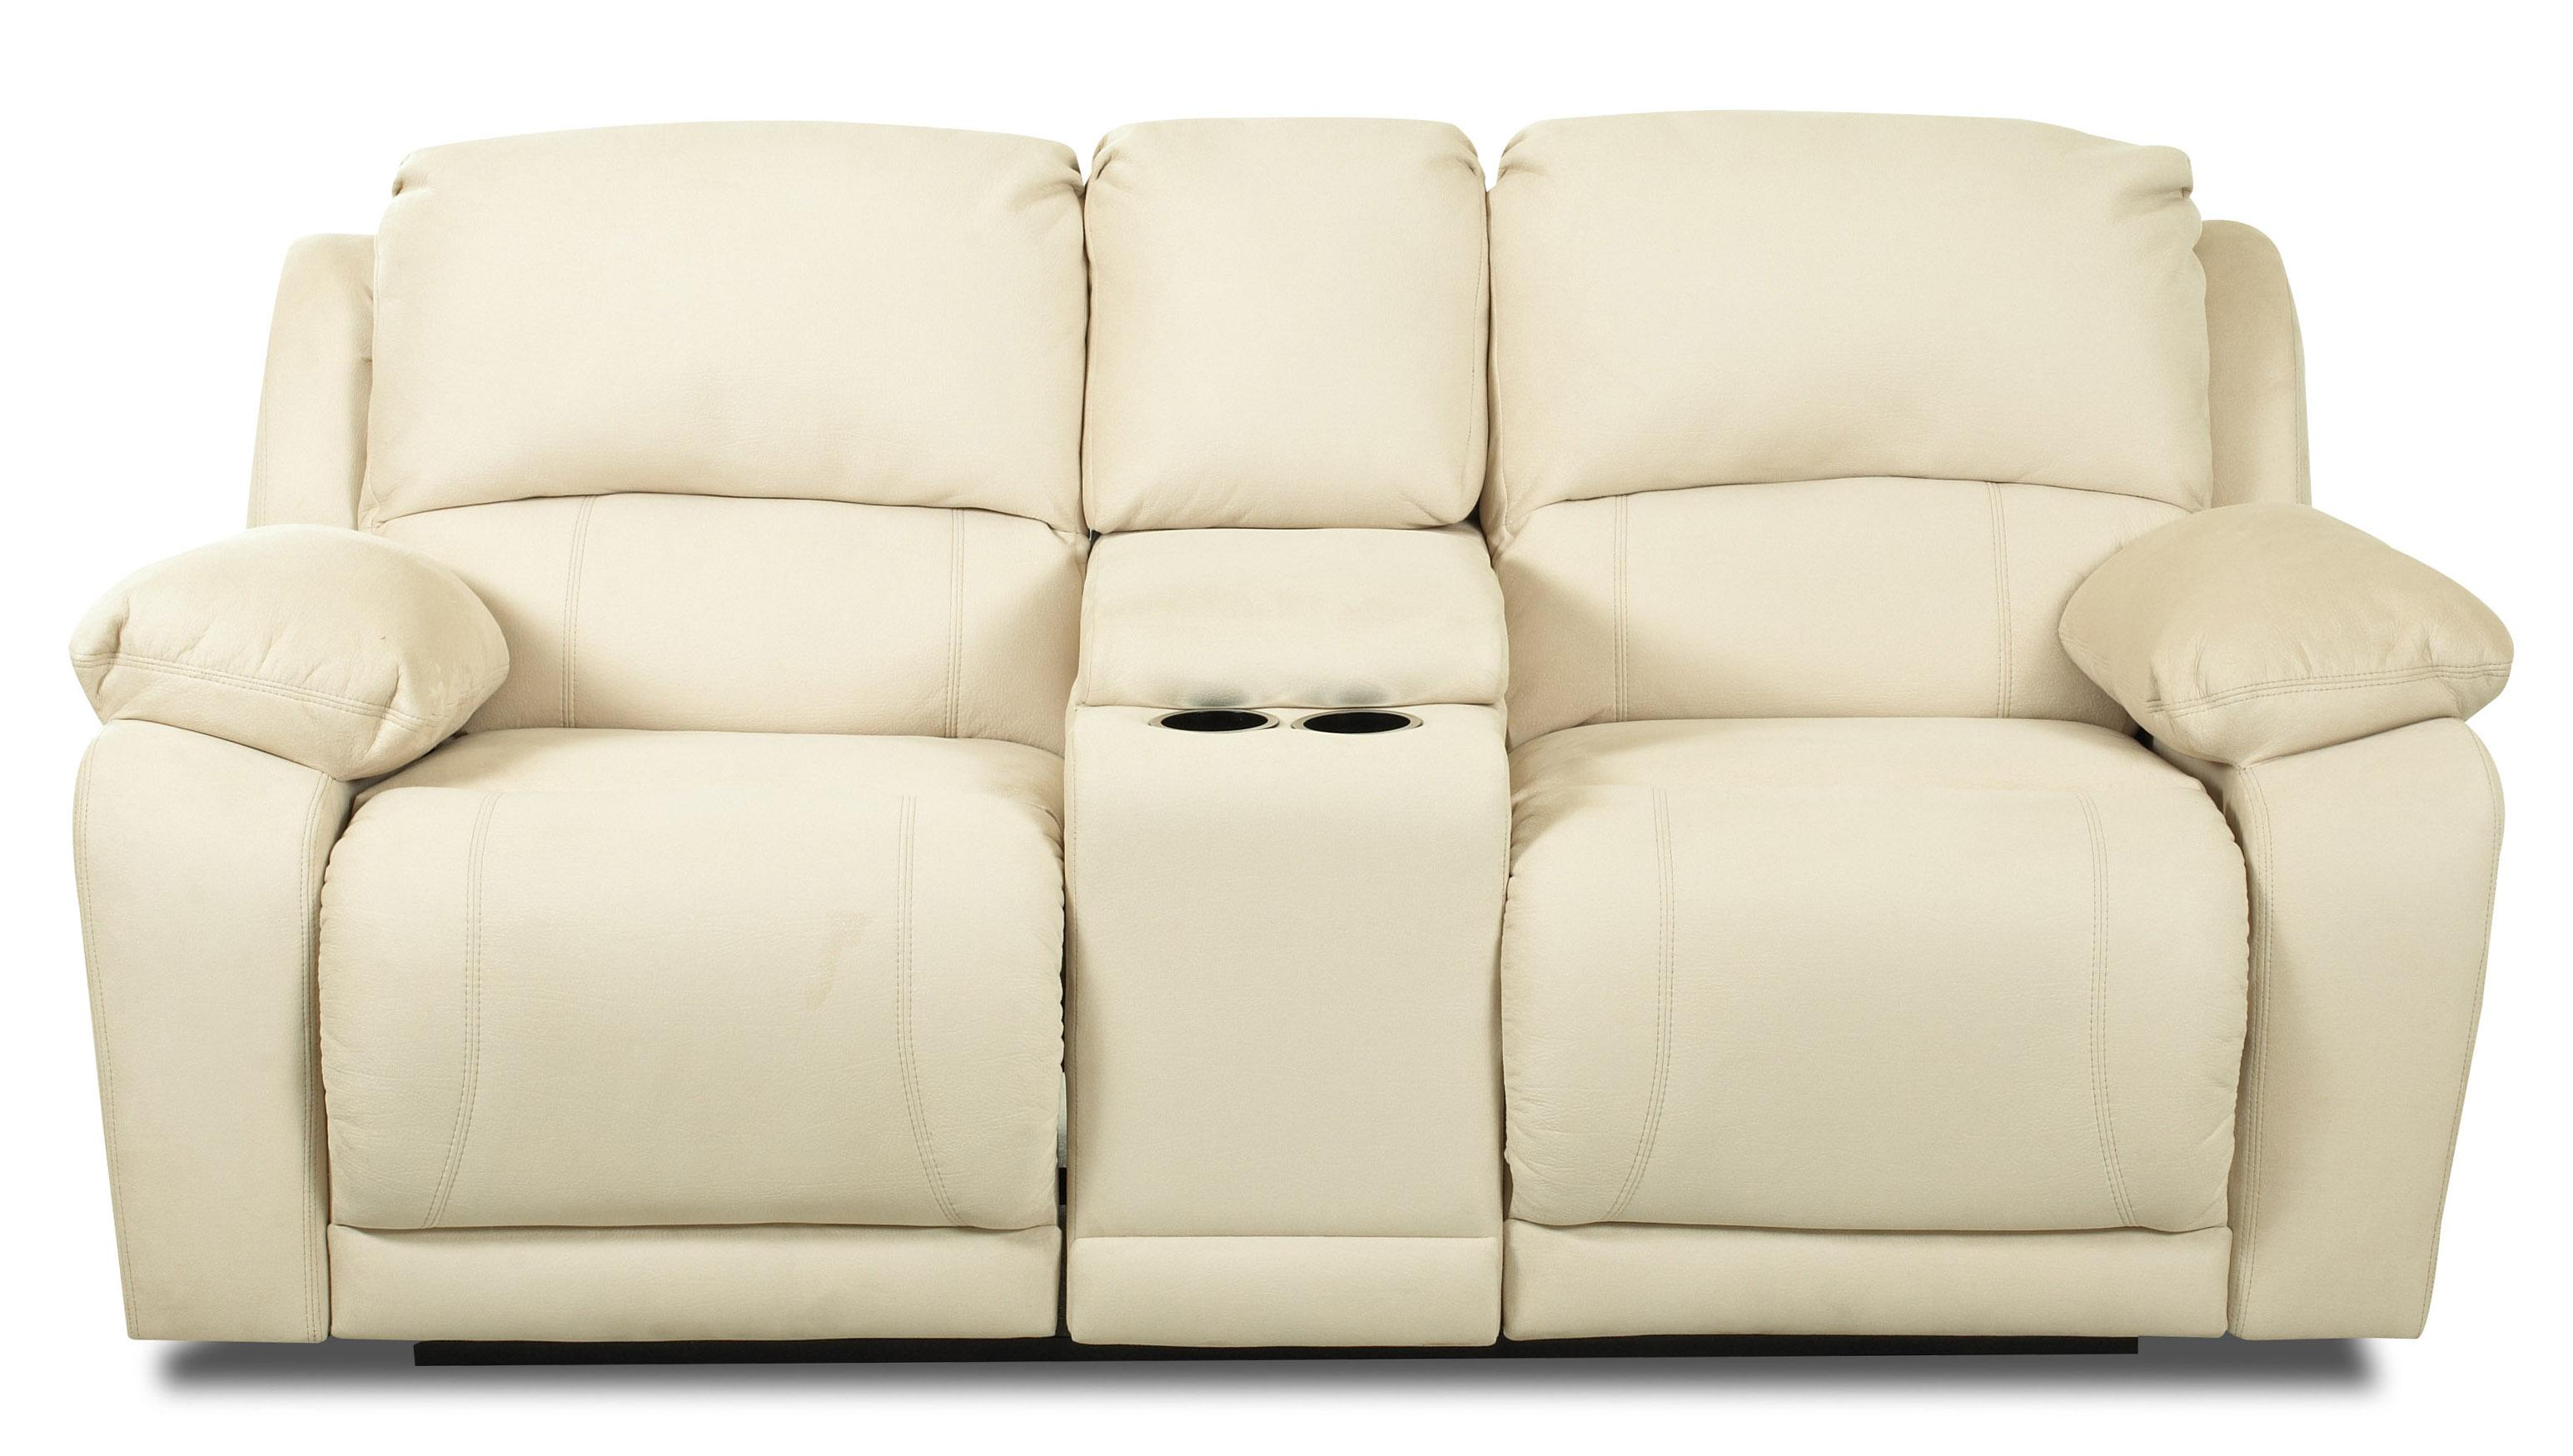 name reclining console loveseat by crls furniture product page chocolate id global cho gel category index chain leather